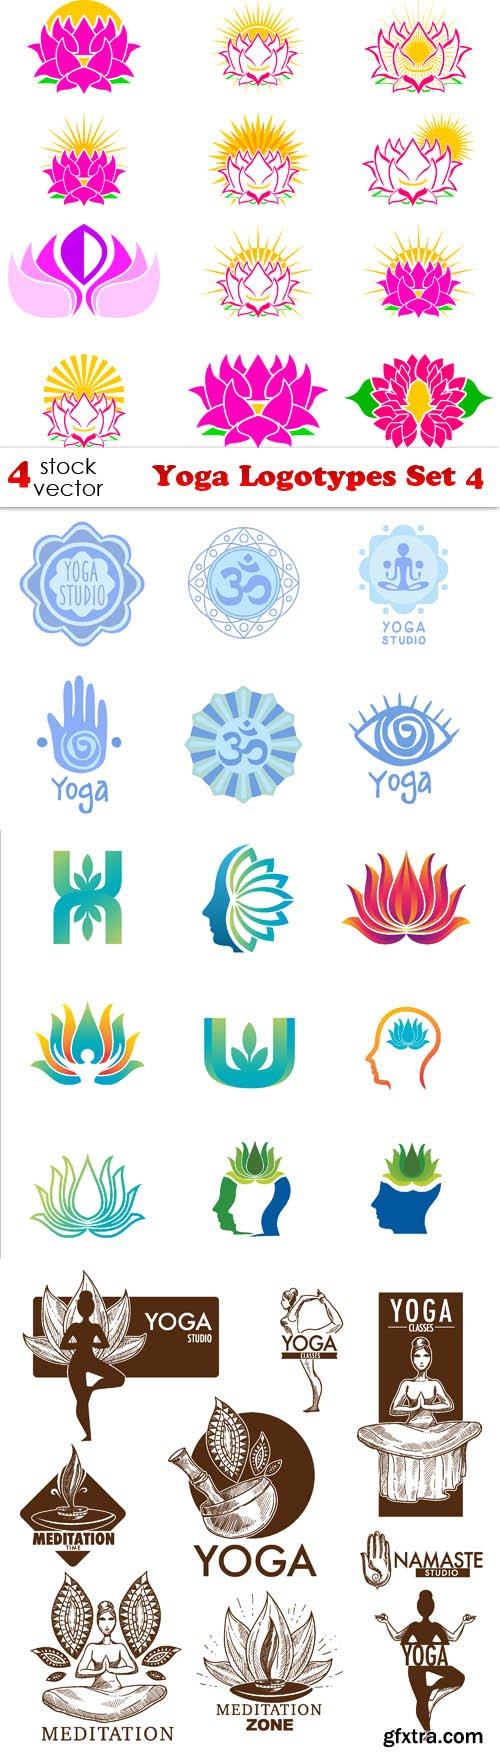 Vectors - Yoga Logotypes Set 4